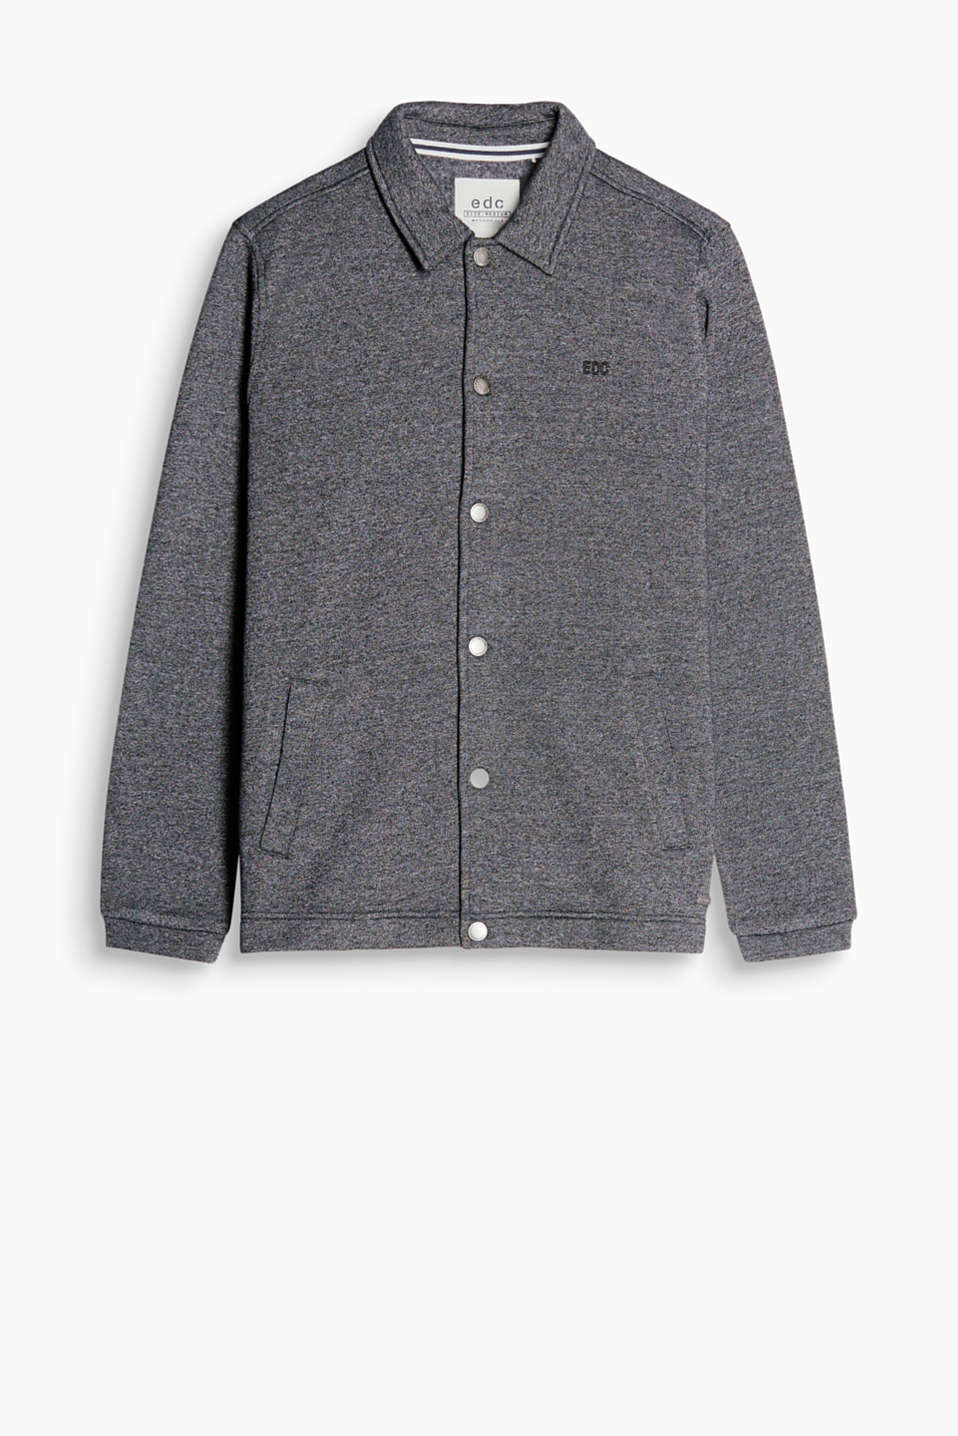 Sweatshirt cardigan in a soft cotton blend with logo embroidery, a shirt collar and press studs